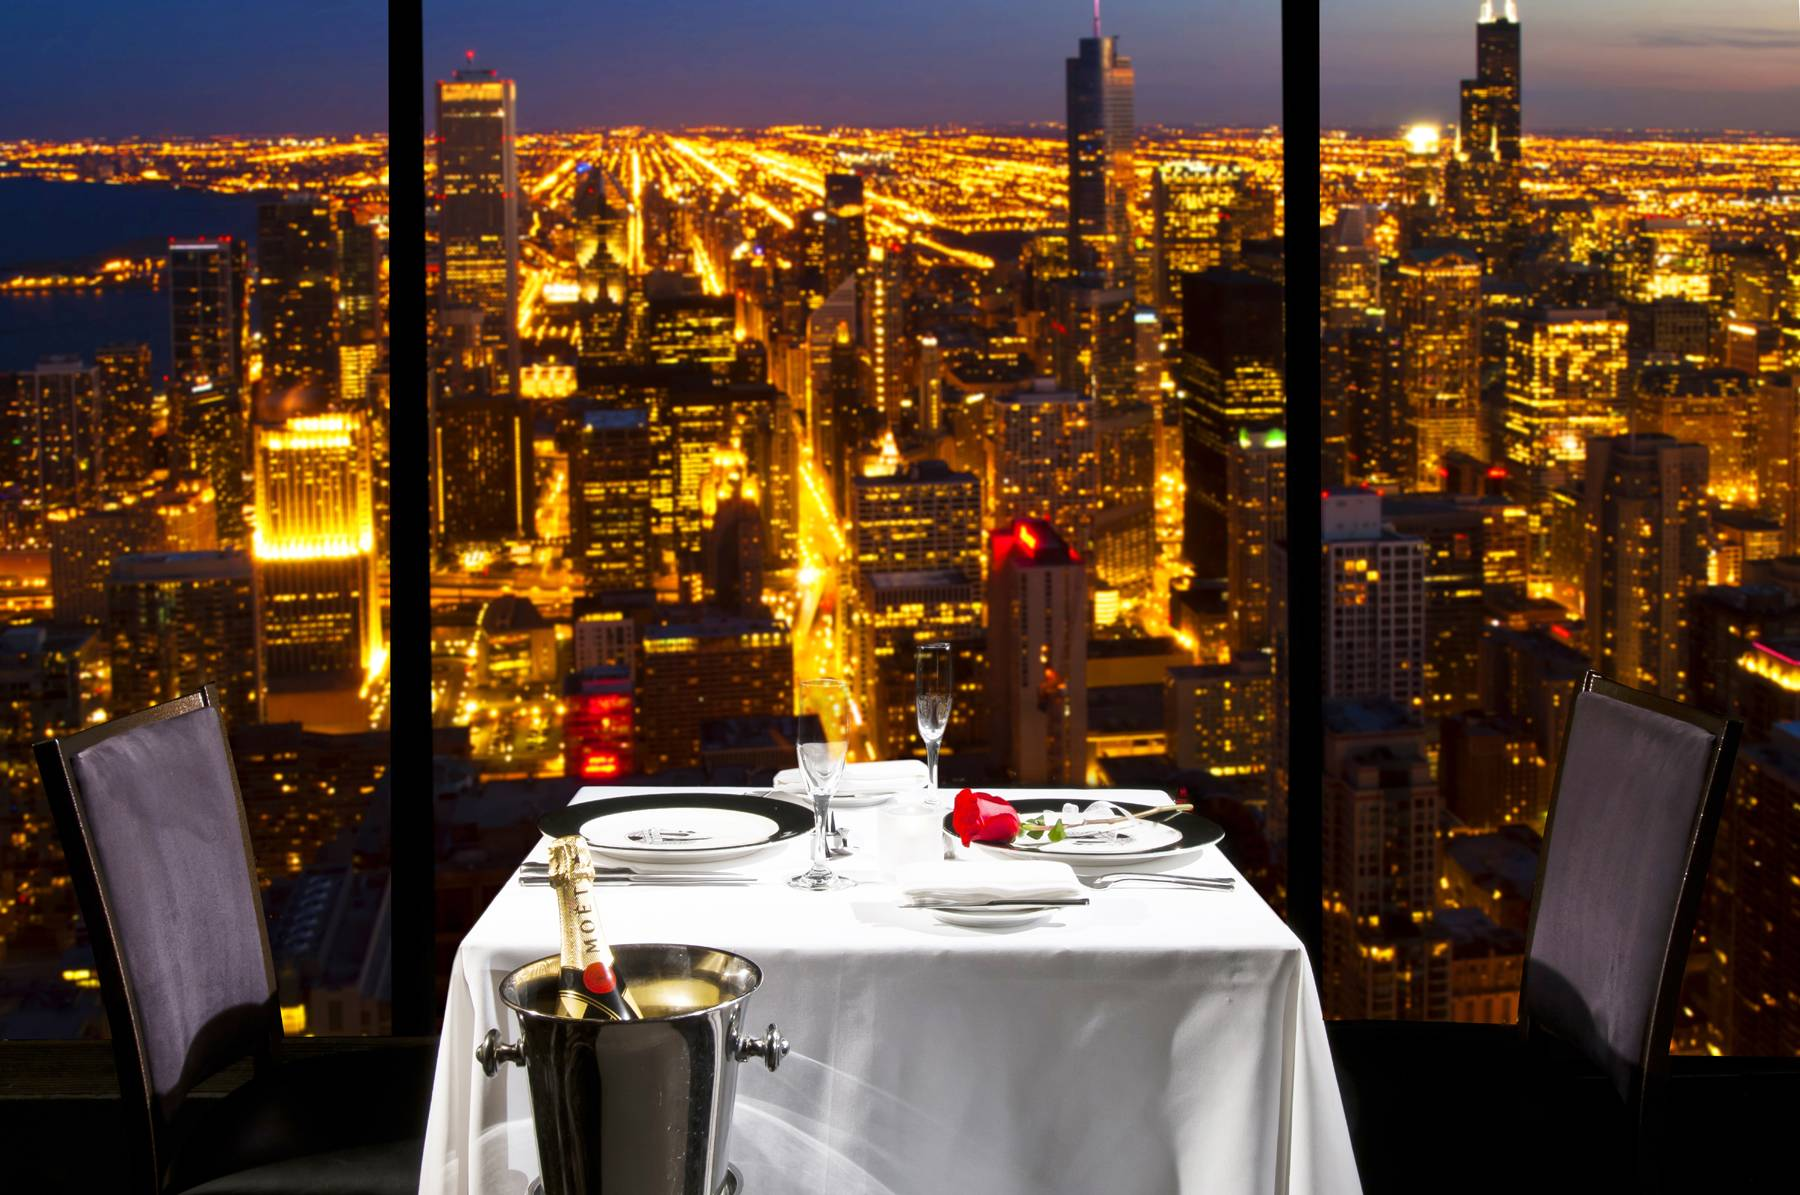 Best Restaurants Near Downtown Chicago